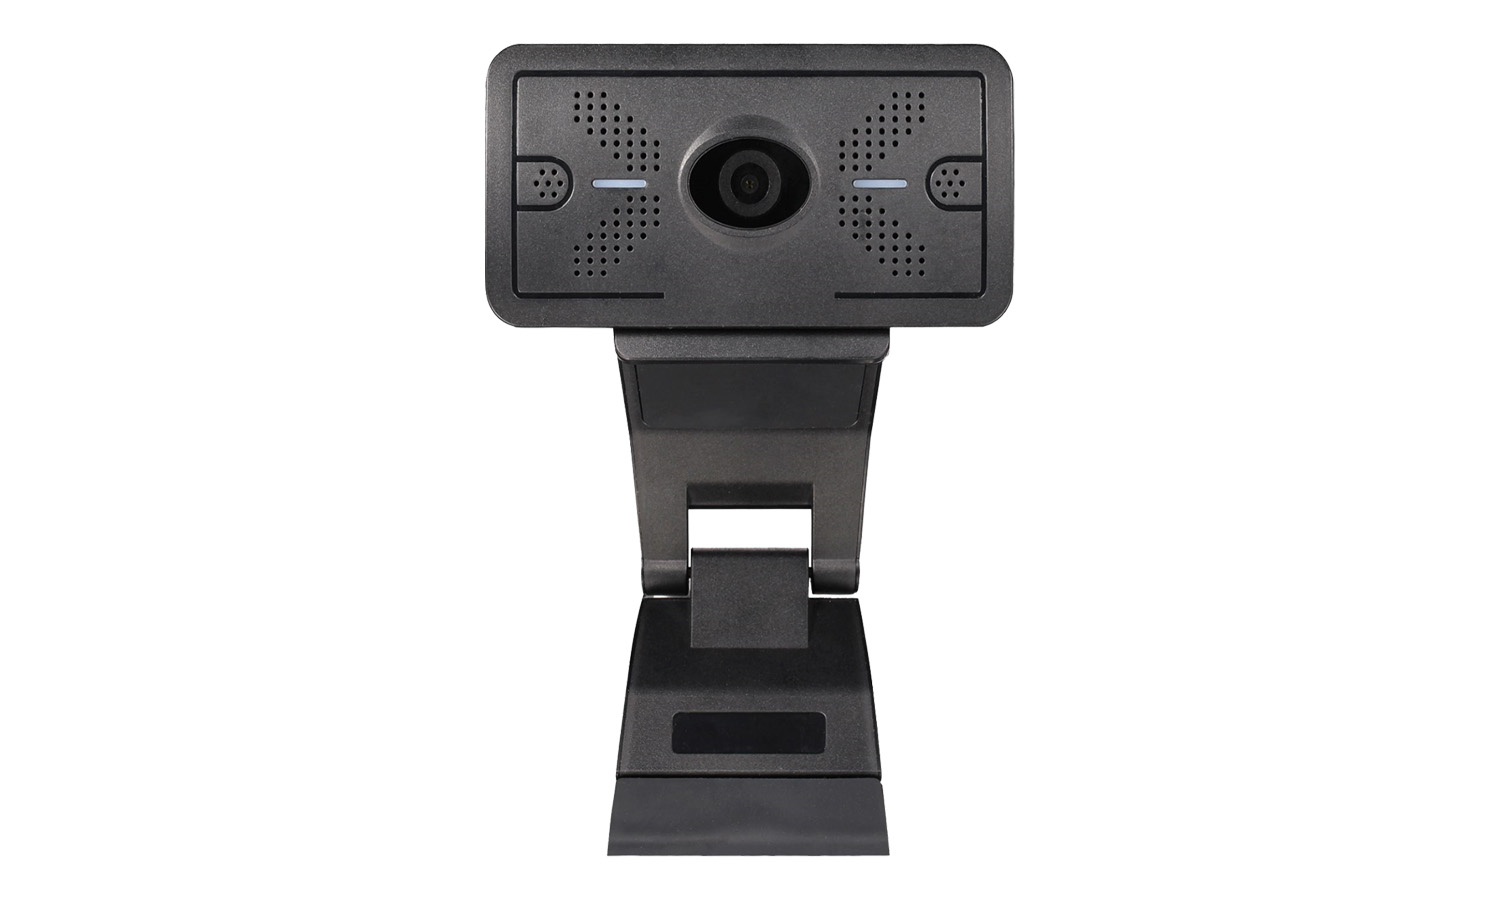 BG-BWEB-S Full HD 1080P USB Web Camera with 2.9MM lens by BZBGEAR